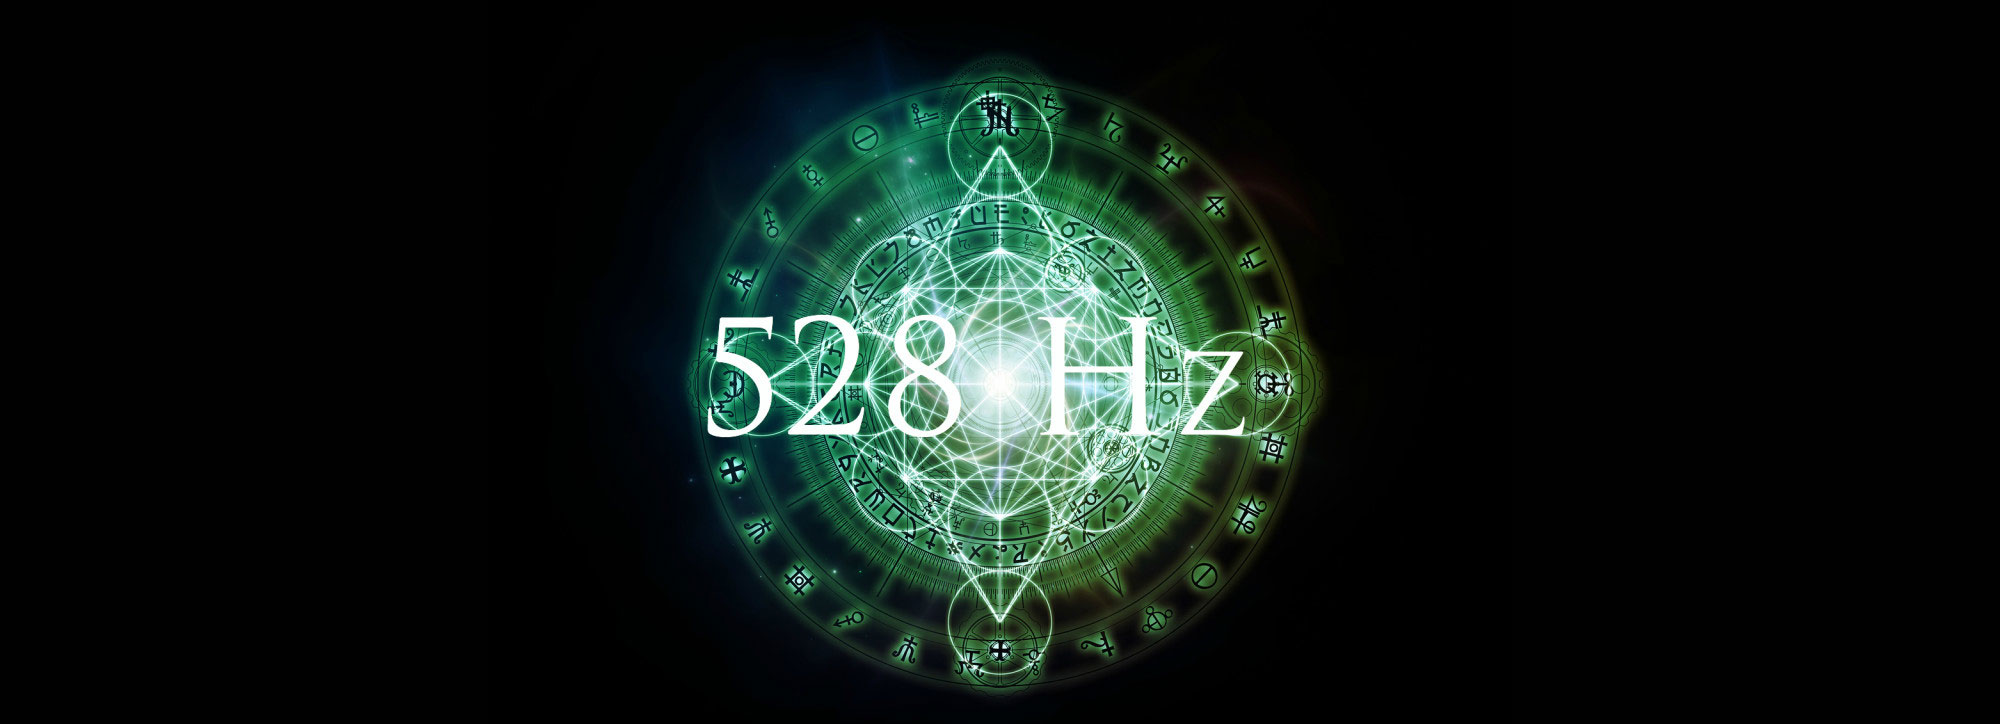 528Hz Frequency Teaching